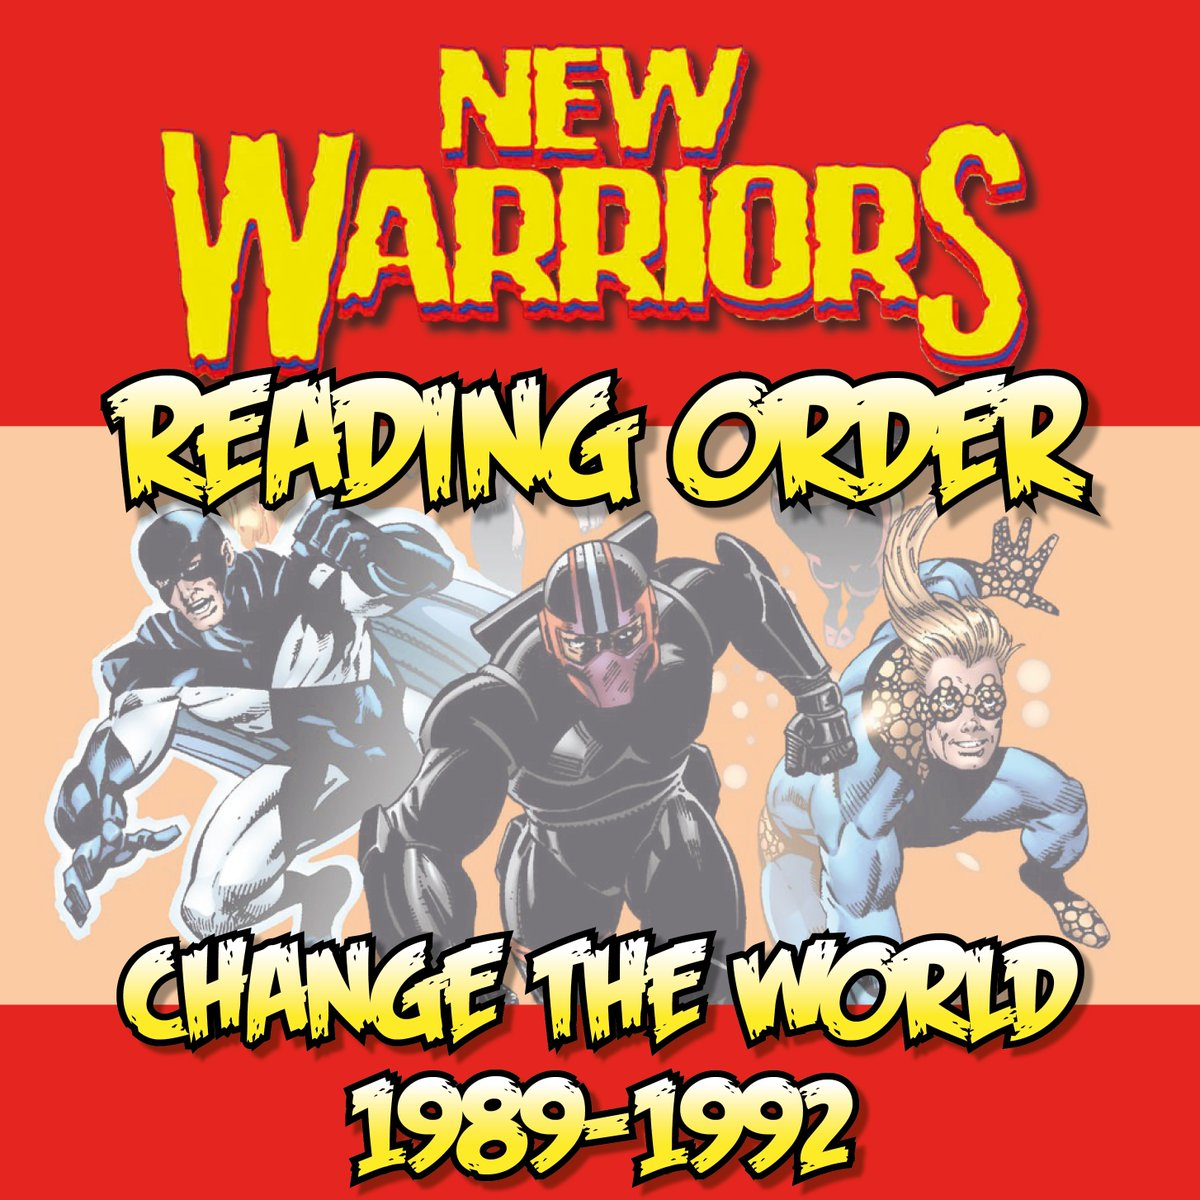 Six teenagers unite to try to make the '90s a better place. NEW WARRIORS READING ORDER: CHANGE THE WORLD (1989-1992) has been added to the Marvel Comics Guide:  http:// bit.ly/NewWarriorsRea dingOrder-Part2  …  - - - #NewWarriors #Nova #Namor #Namorita #MarvelComics<br>http://pic.twitter.com/dZdxO4vL5u